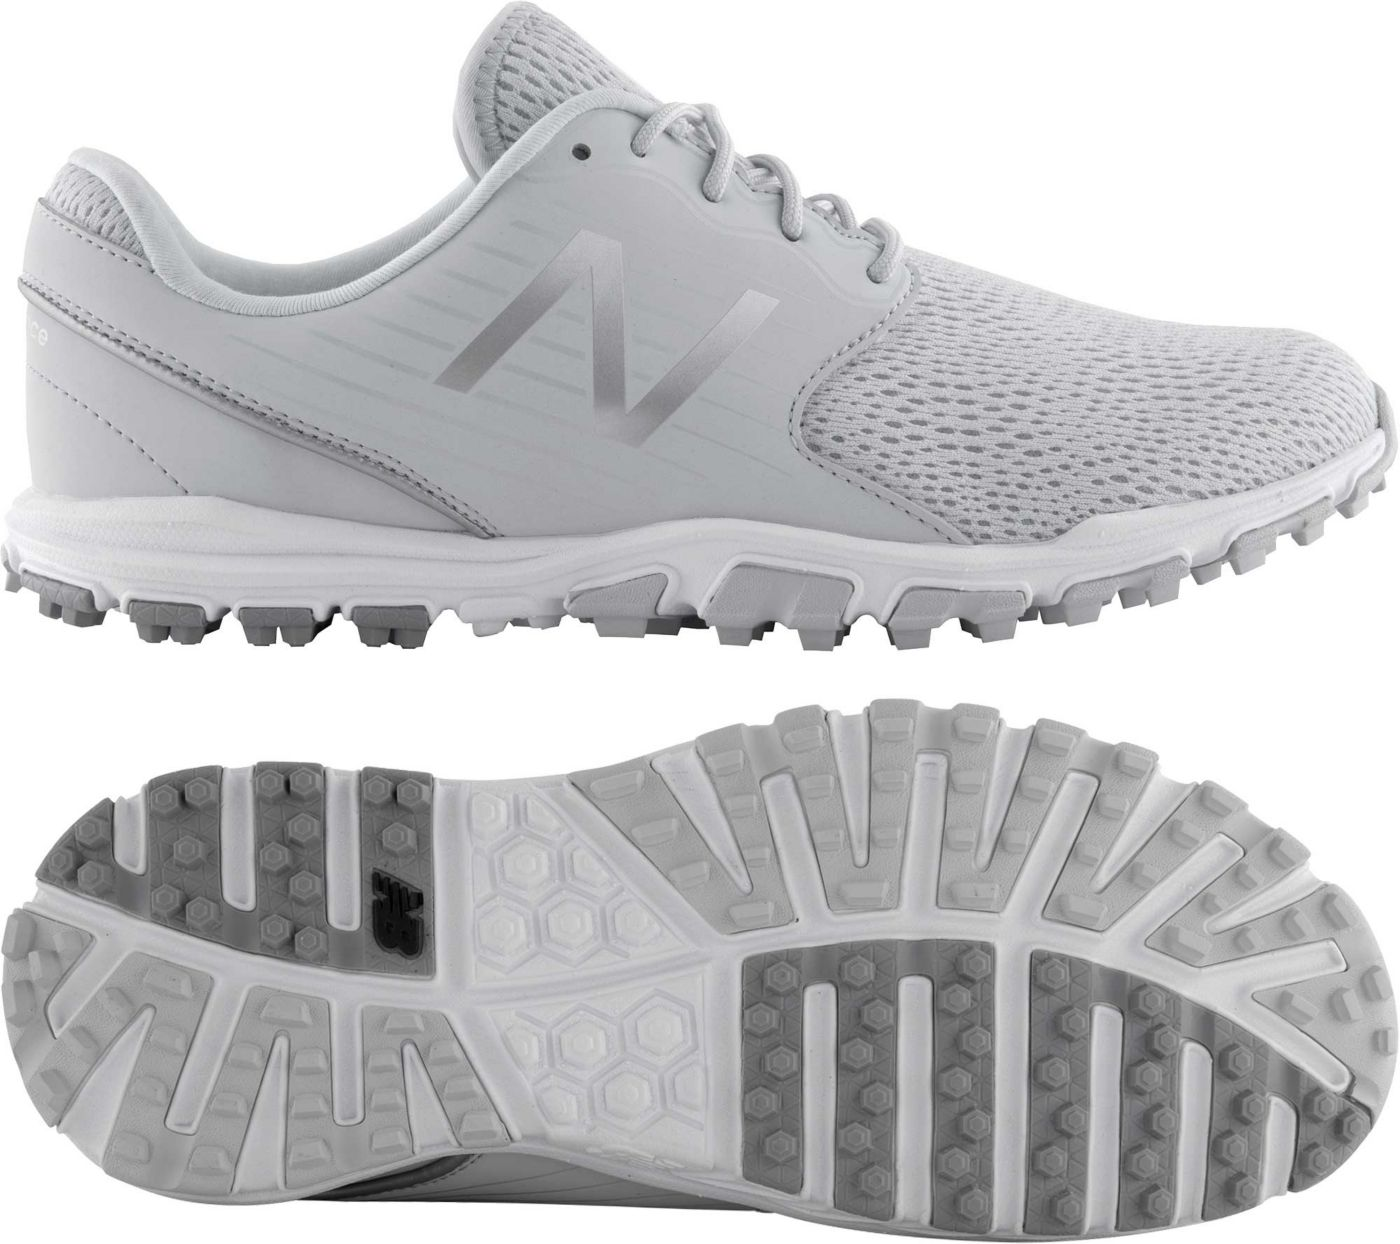 New Balance Women's Minimus SL Golf Shoes